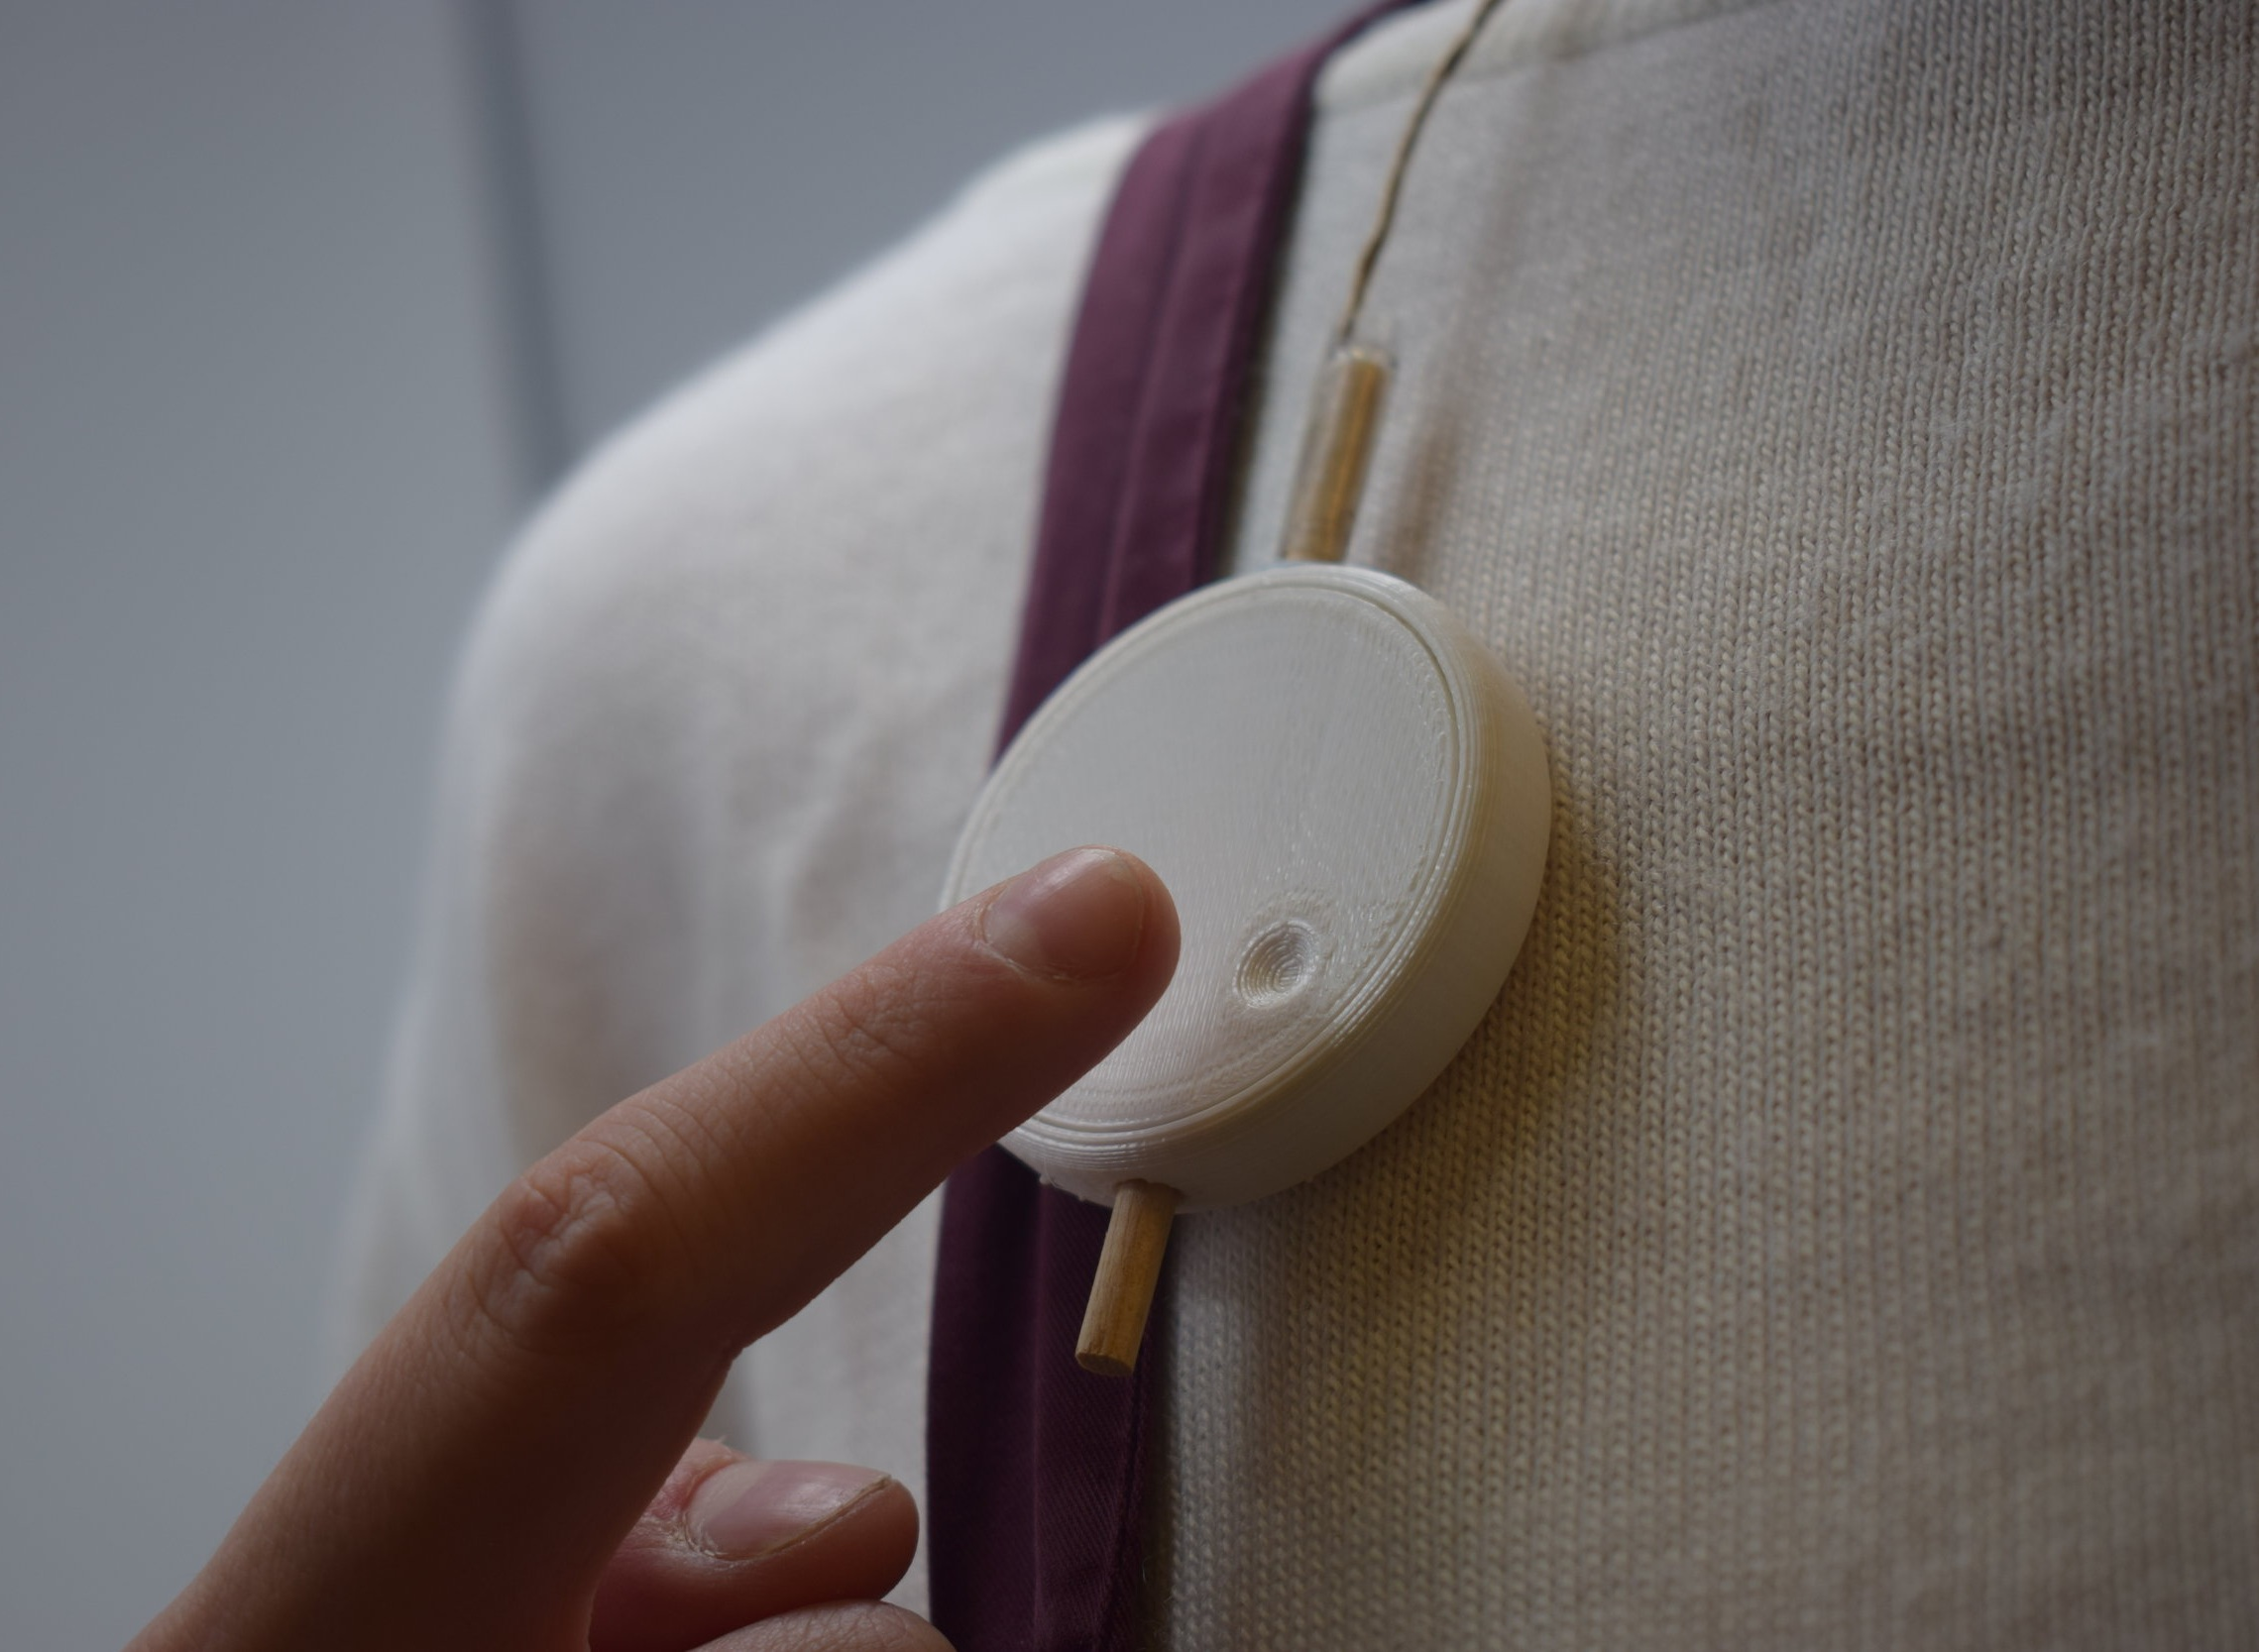 Feedback - The device didn't feel secure enough around the users neck, especally since the device will be used on the go.The attachment of the earpiece to the device felt restricting to the users movement.A more secure design, with a completely removable bluetooth earpiece will be developed going forwards.